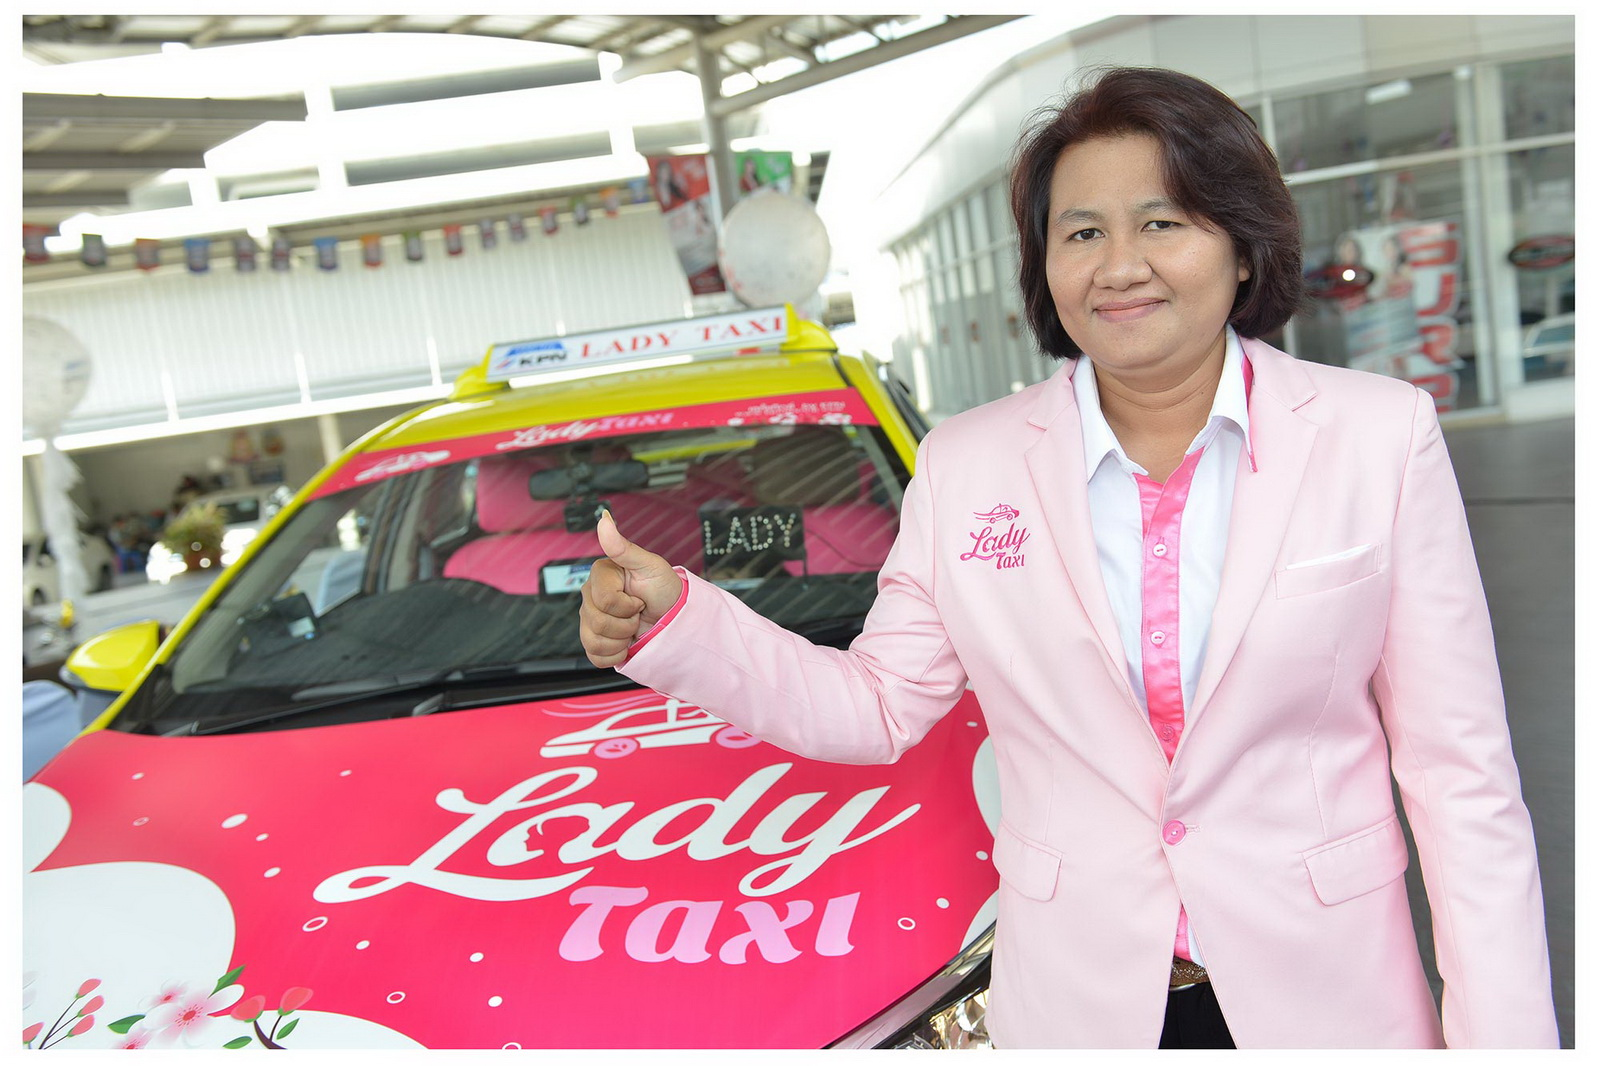 lady_taxi_3